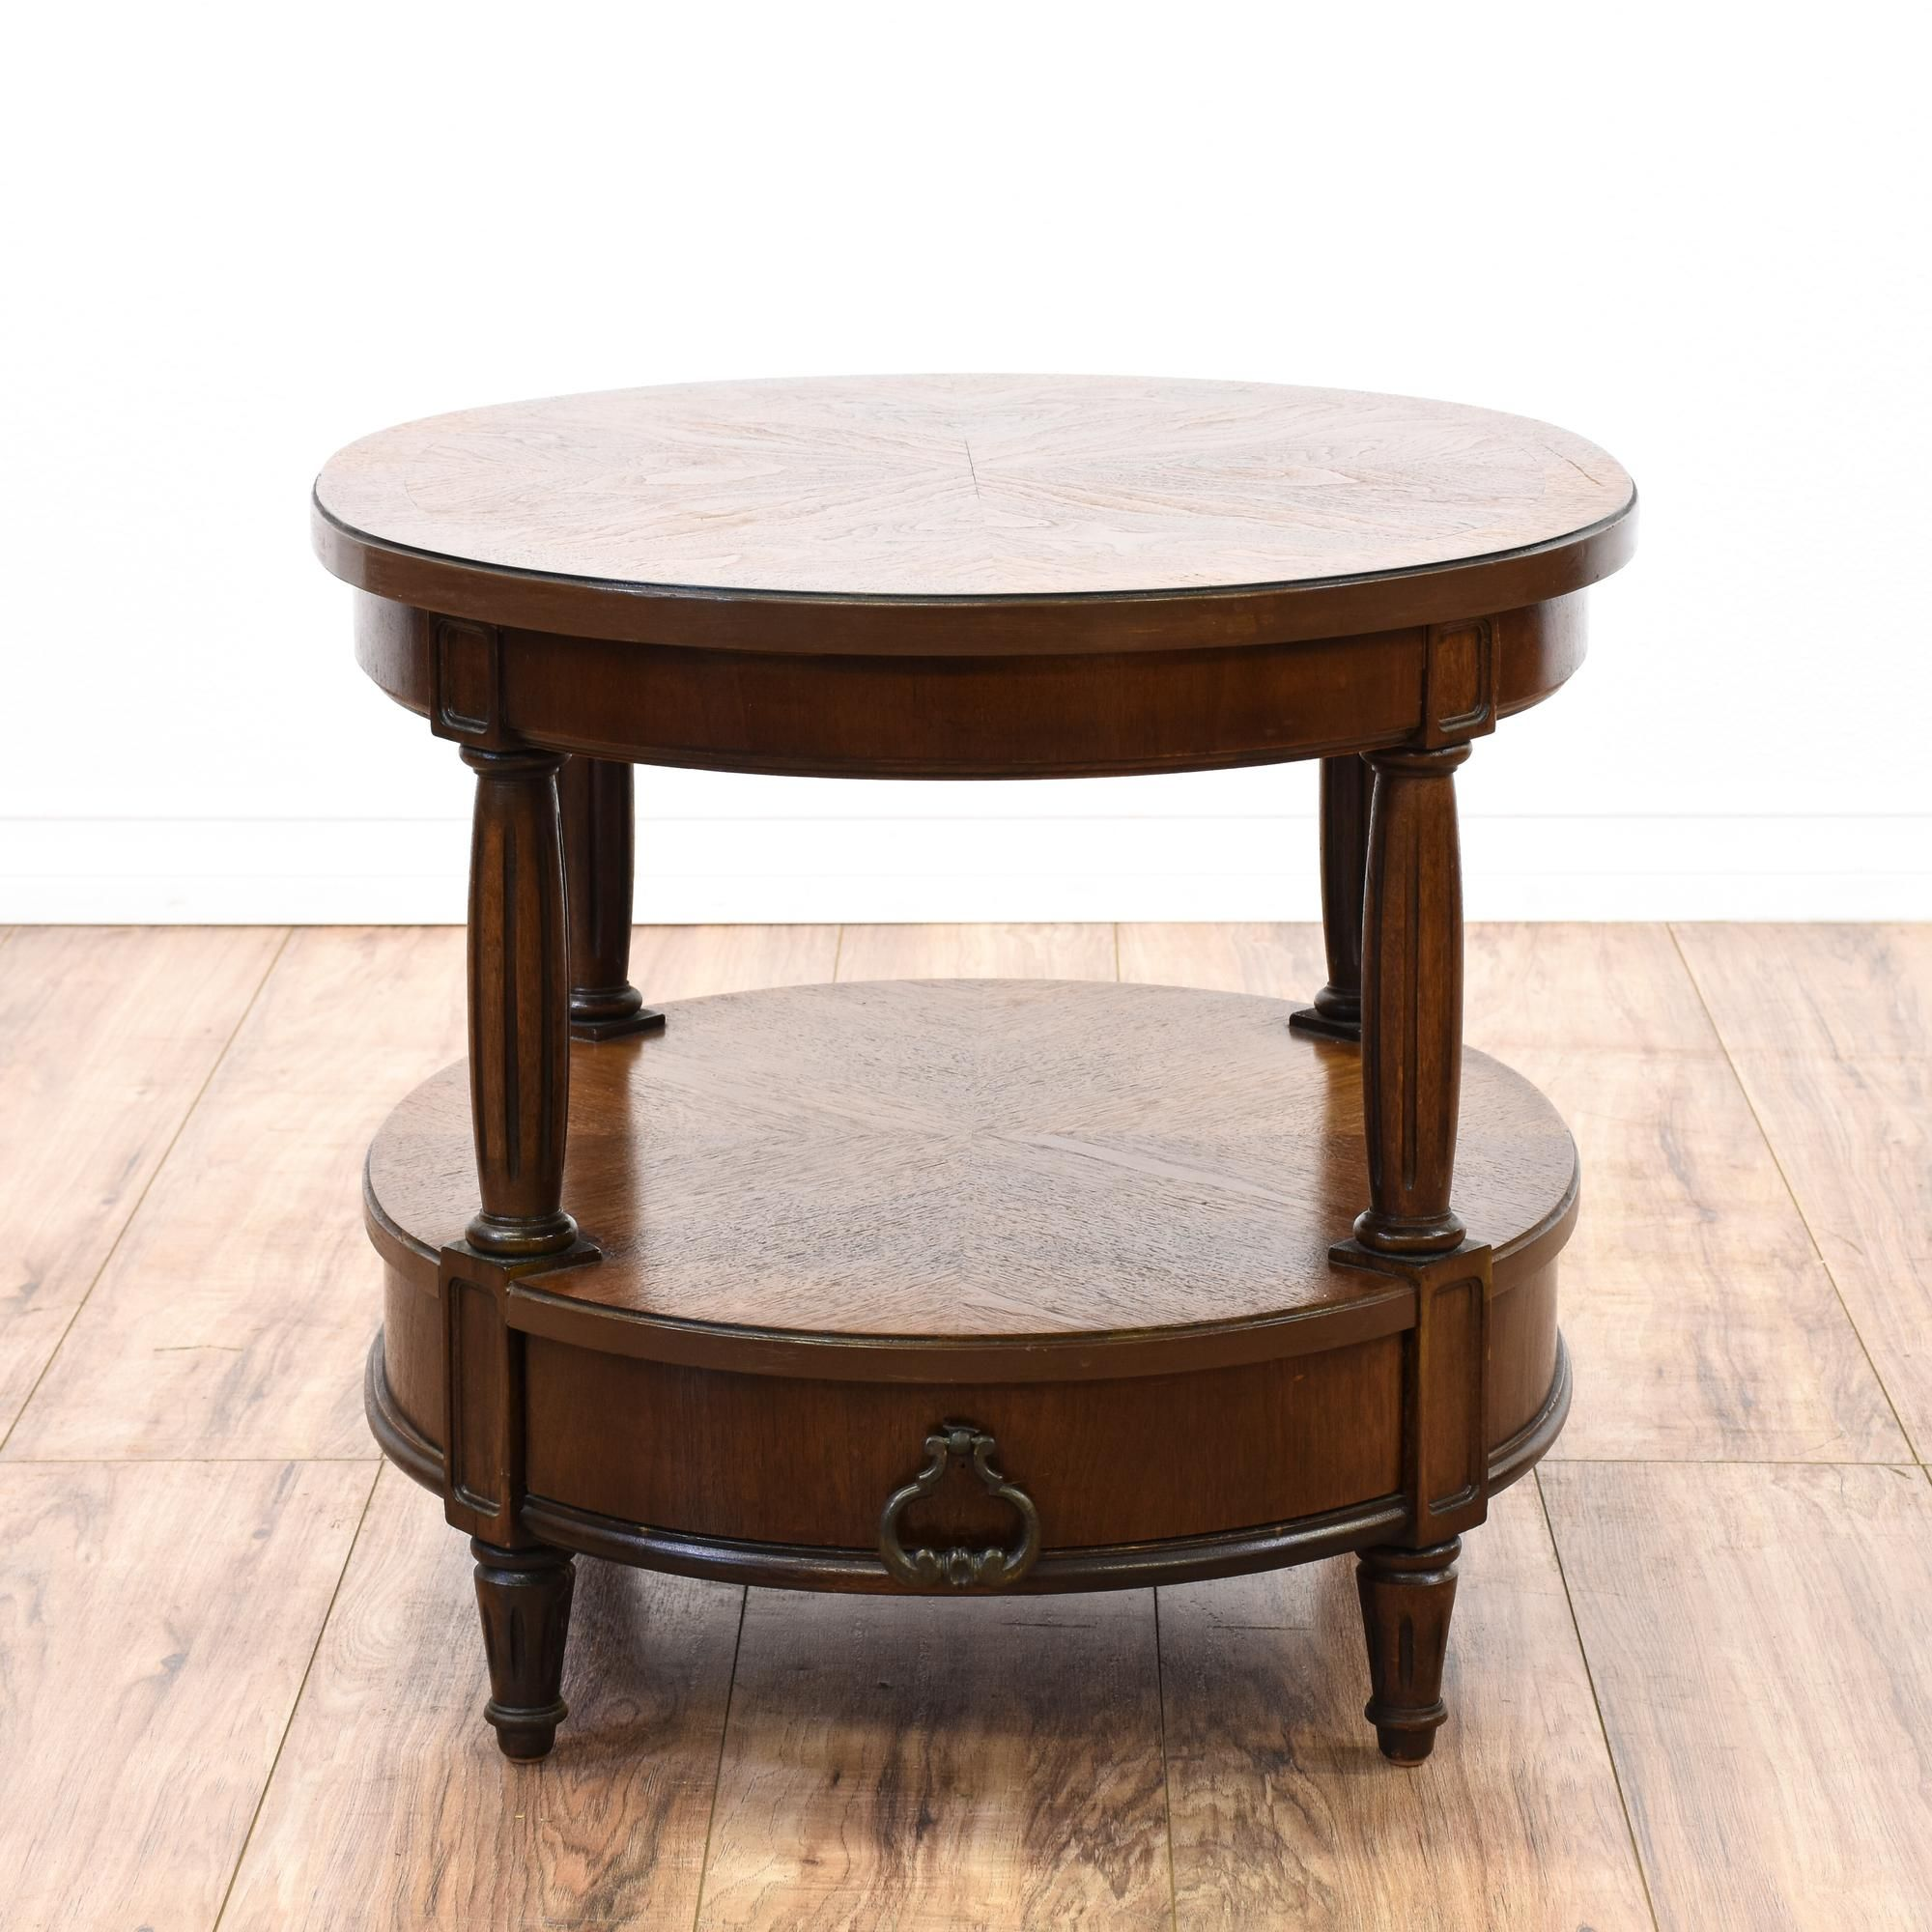 Neoclassical Thomasville Oval Tiered End Table Table End Tables Vintage Furniture